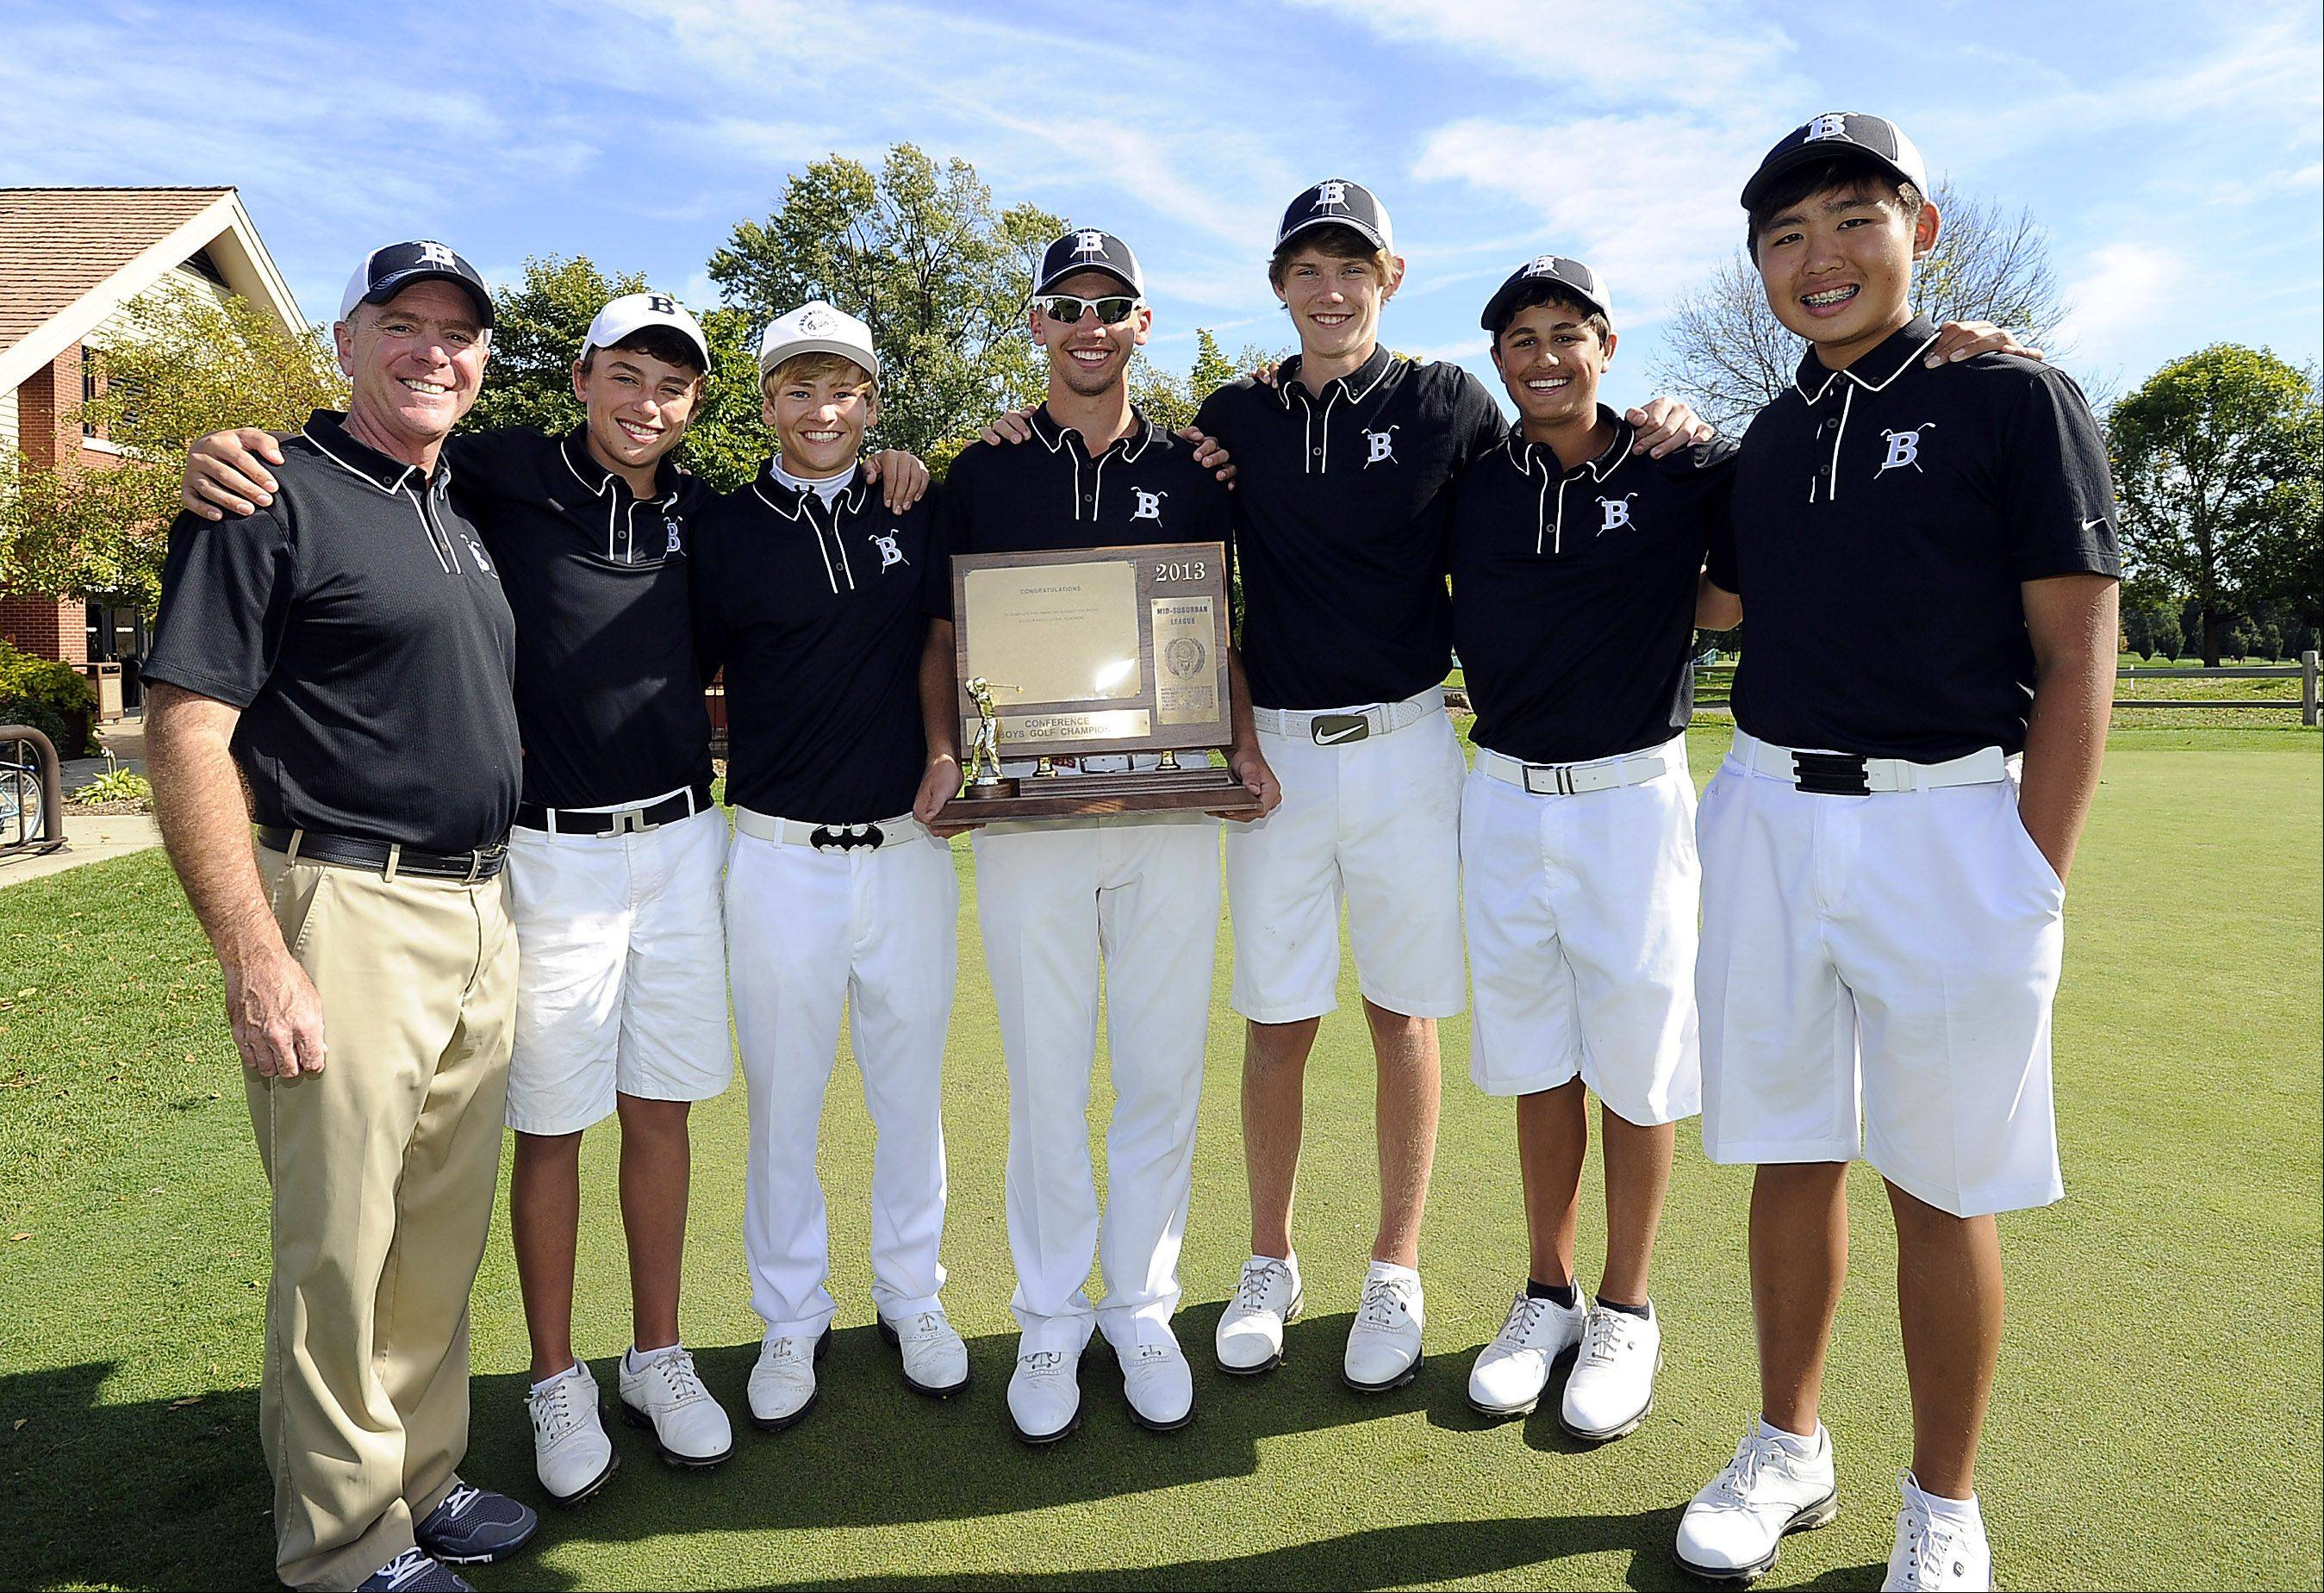 Barrington, winner of the Mid-Suburban League boys golf championship: from left, coach Mike Kallenbach, Joey Batliner, Burke Barsamian, medalist Brad Powell, Cole Kempinski, Tom Calbi and Tim Lim.